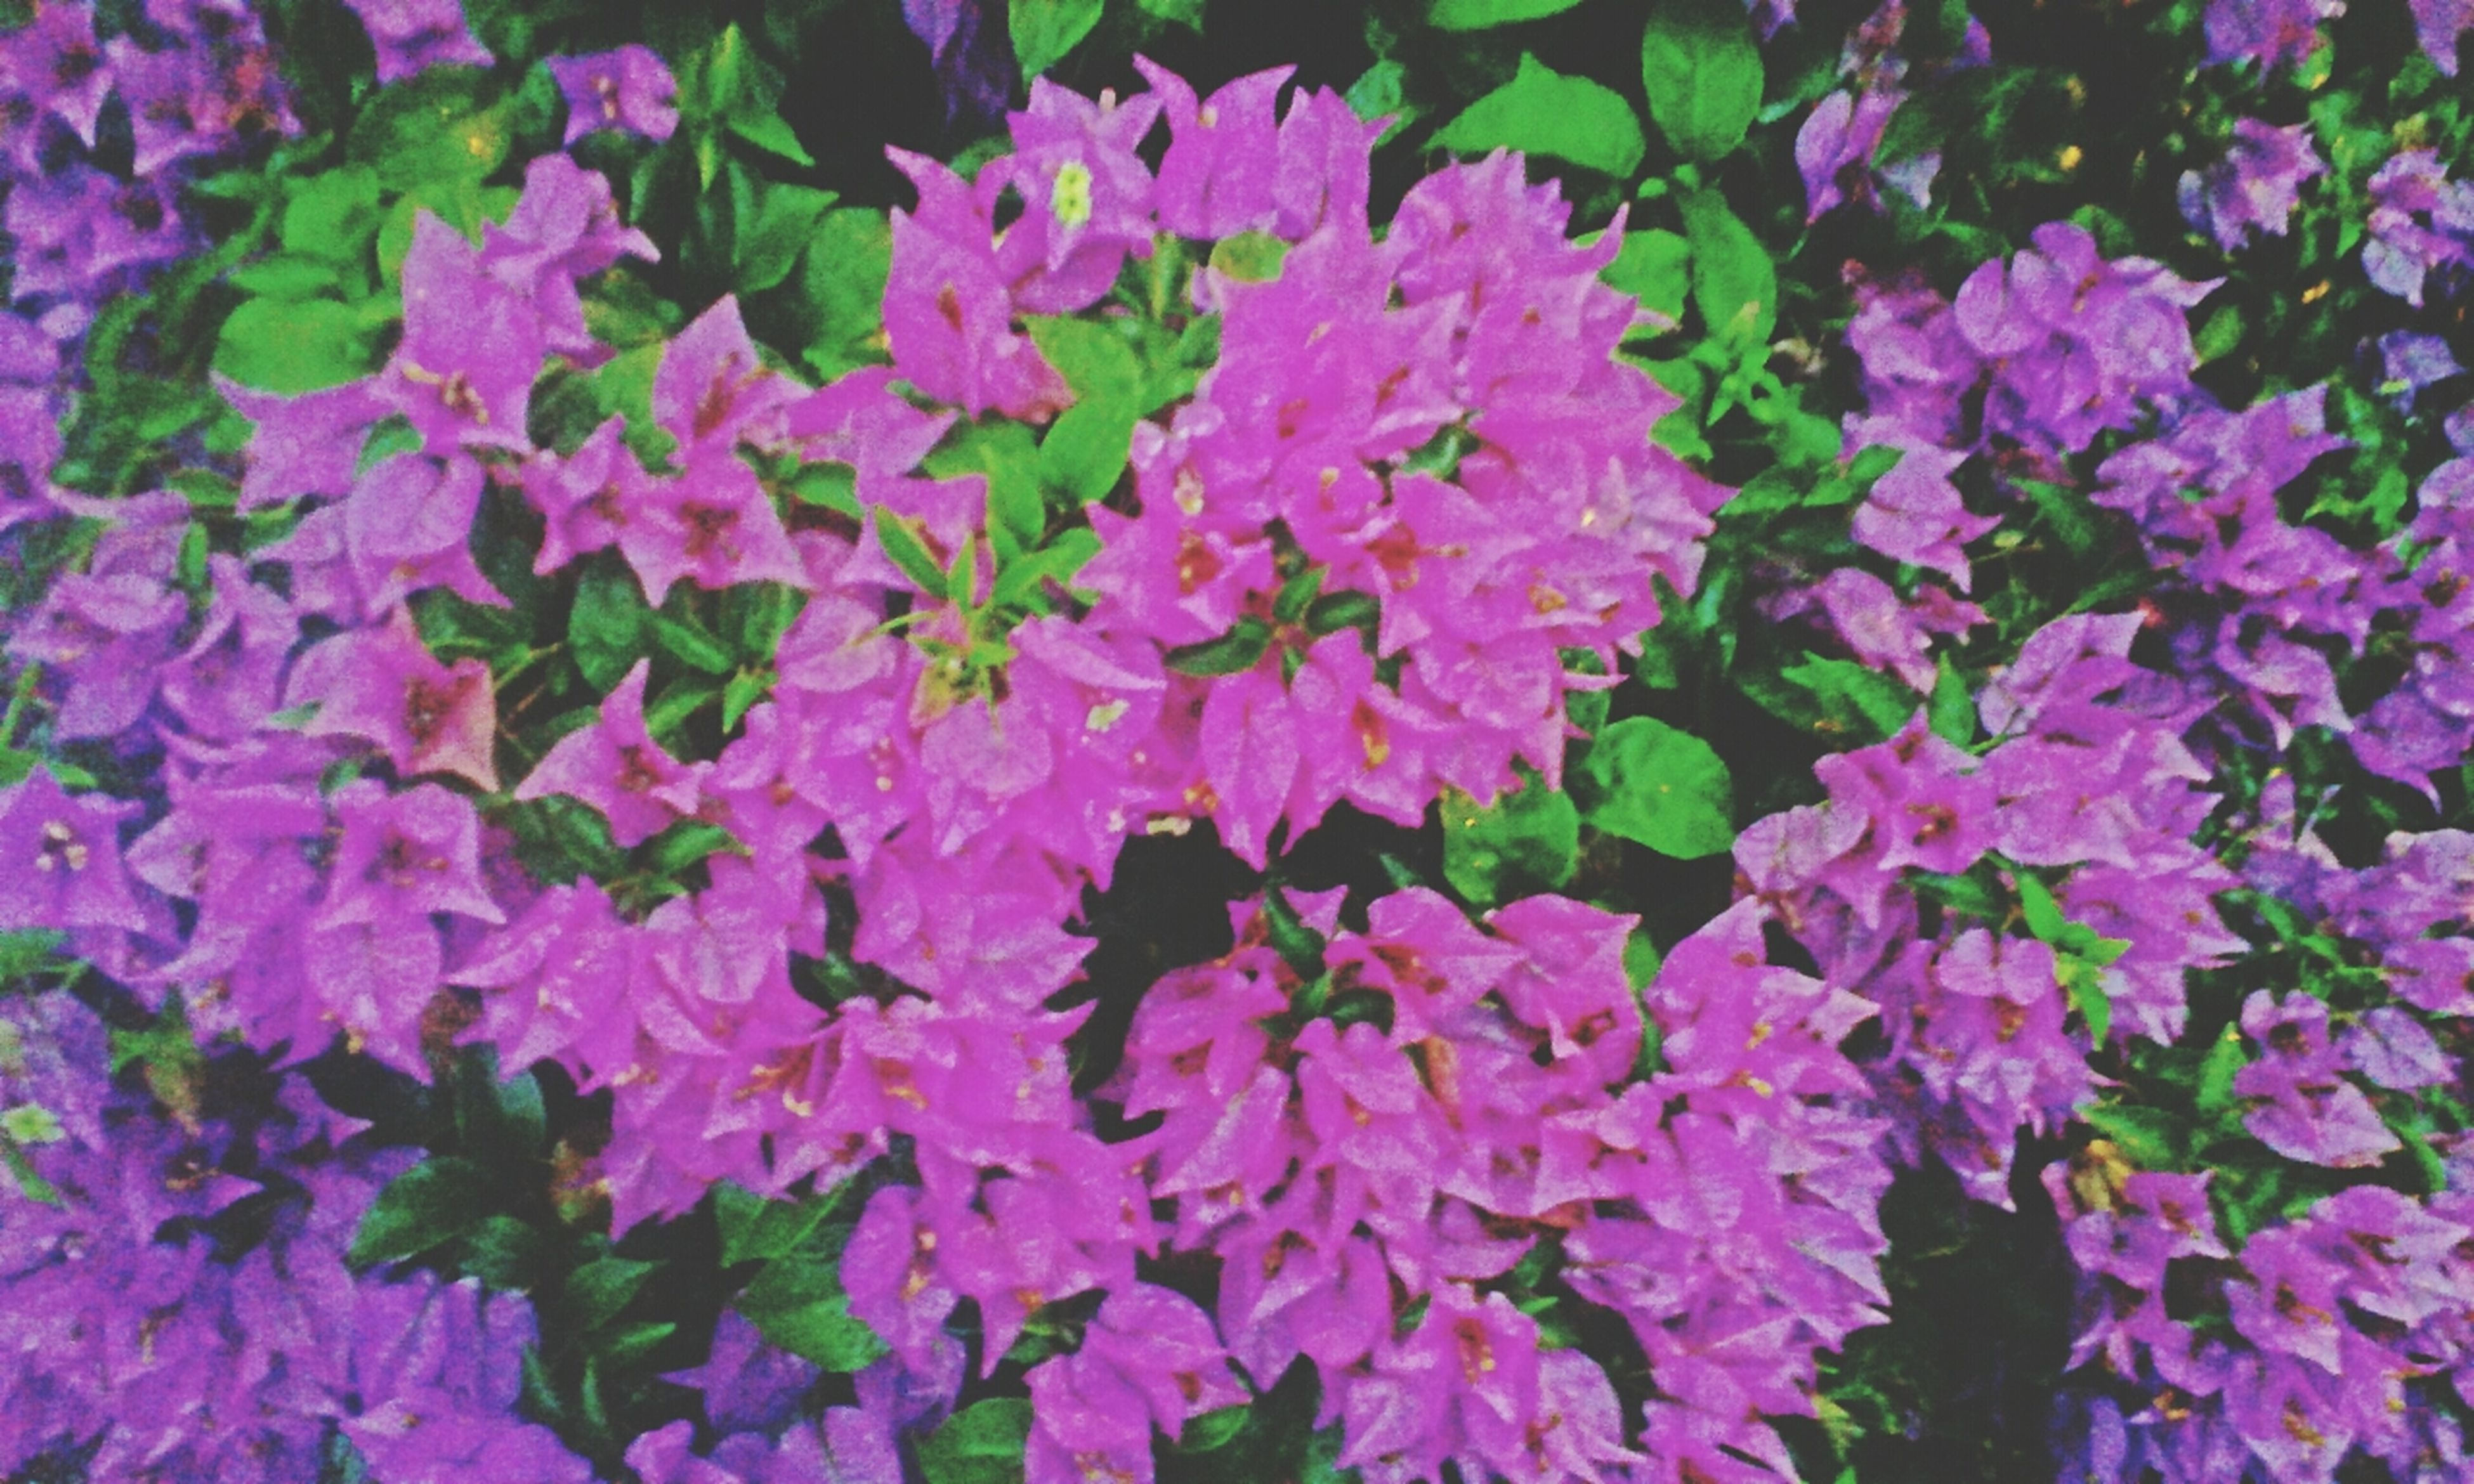 flower, freshness, petal, fragility, growth, beauty in nature, flower head, blooming, pink color, nature, plant, full frame, purple, high angle view, backgrounds, abundance, close-up, in bloom, park - man made space, outdoors